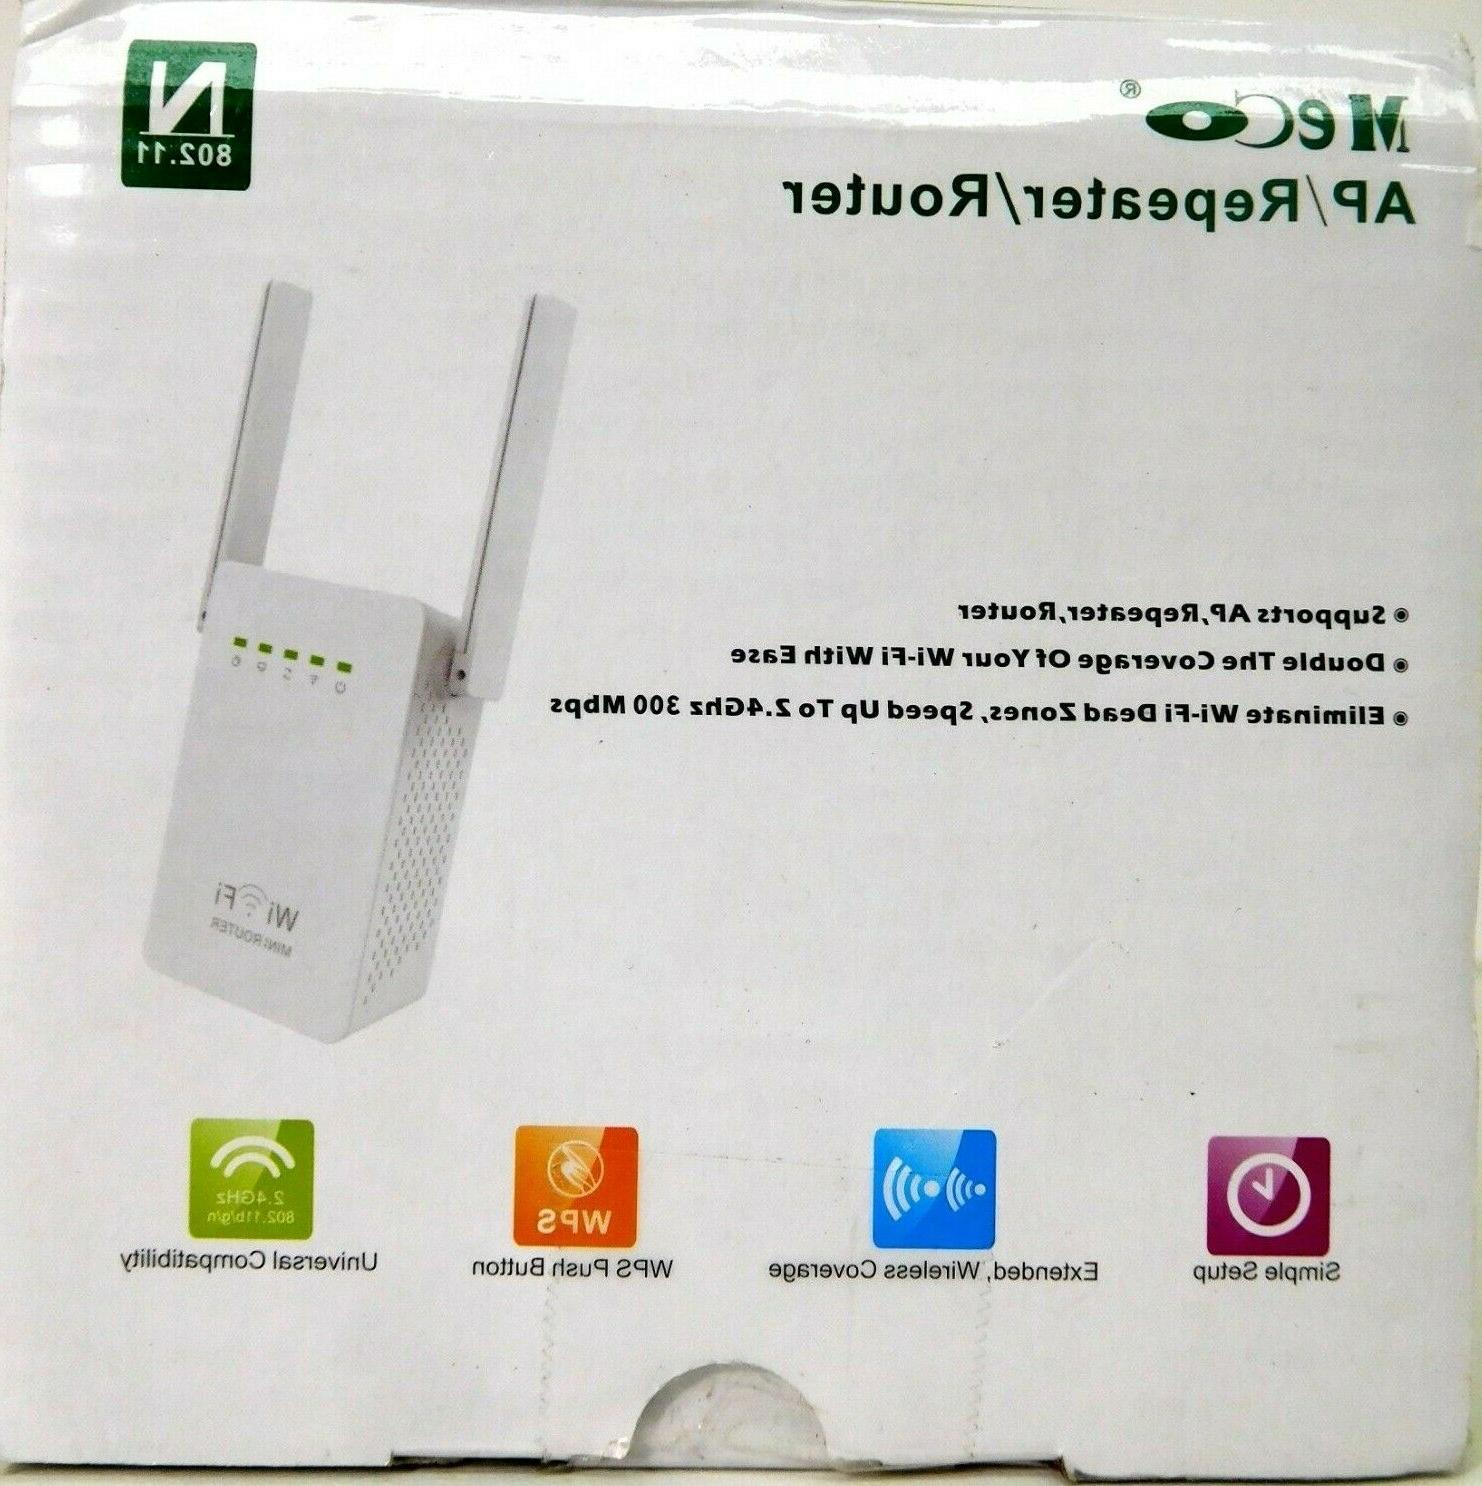 Meco 2.4Ghz 300Mbps Wireless AP Extender Mini Router